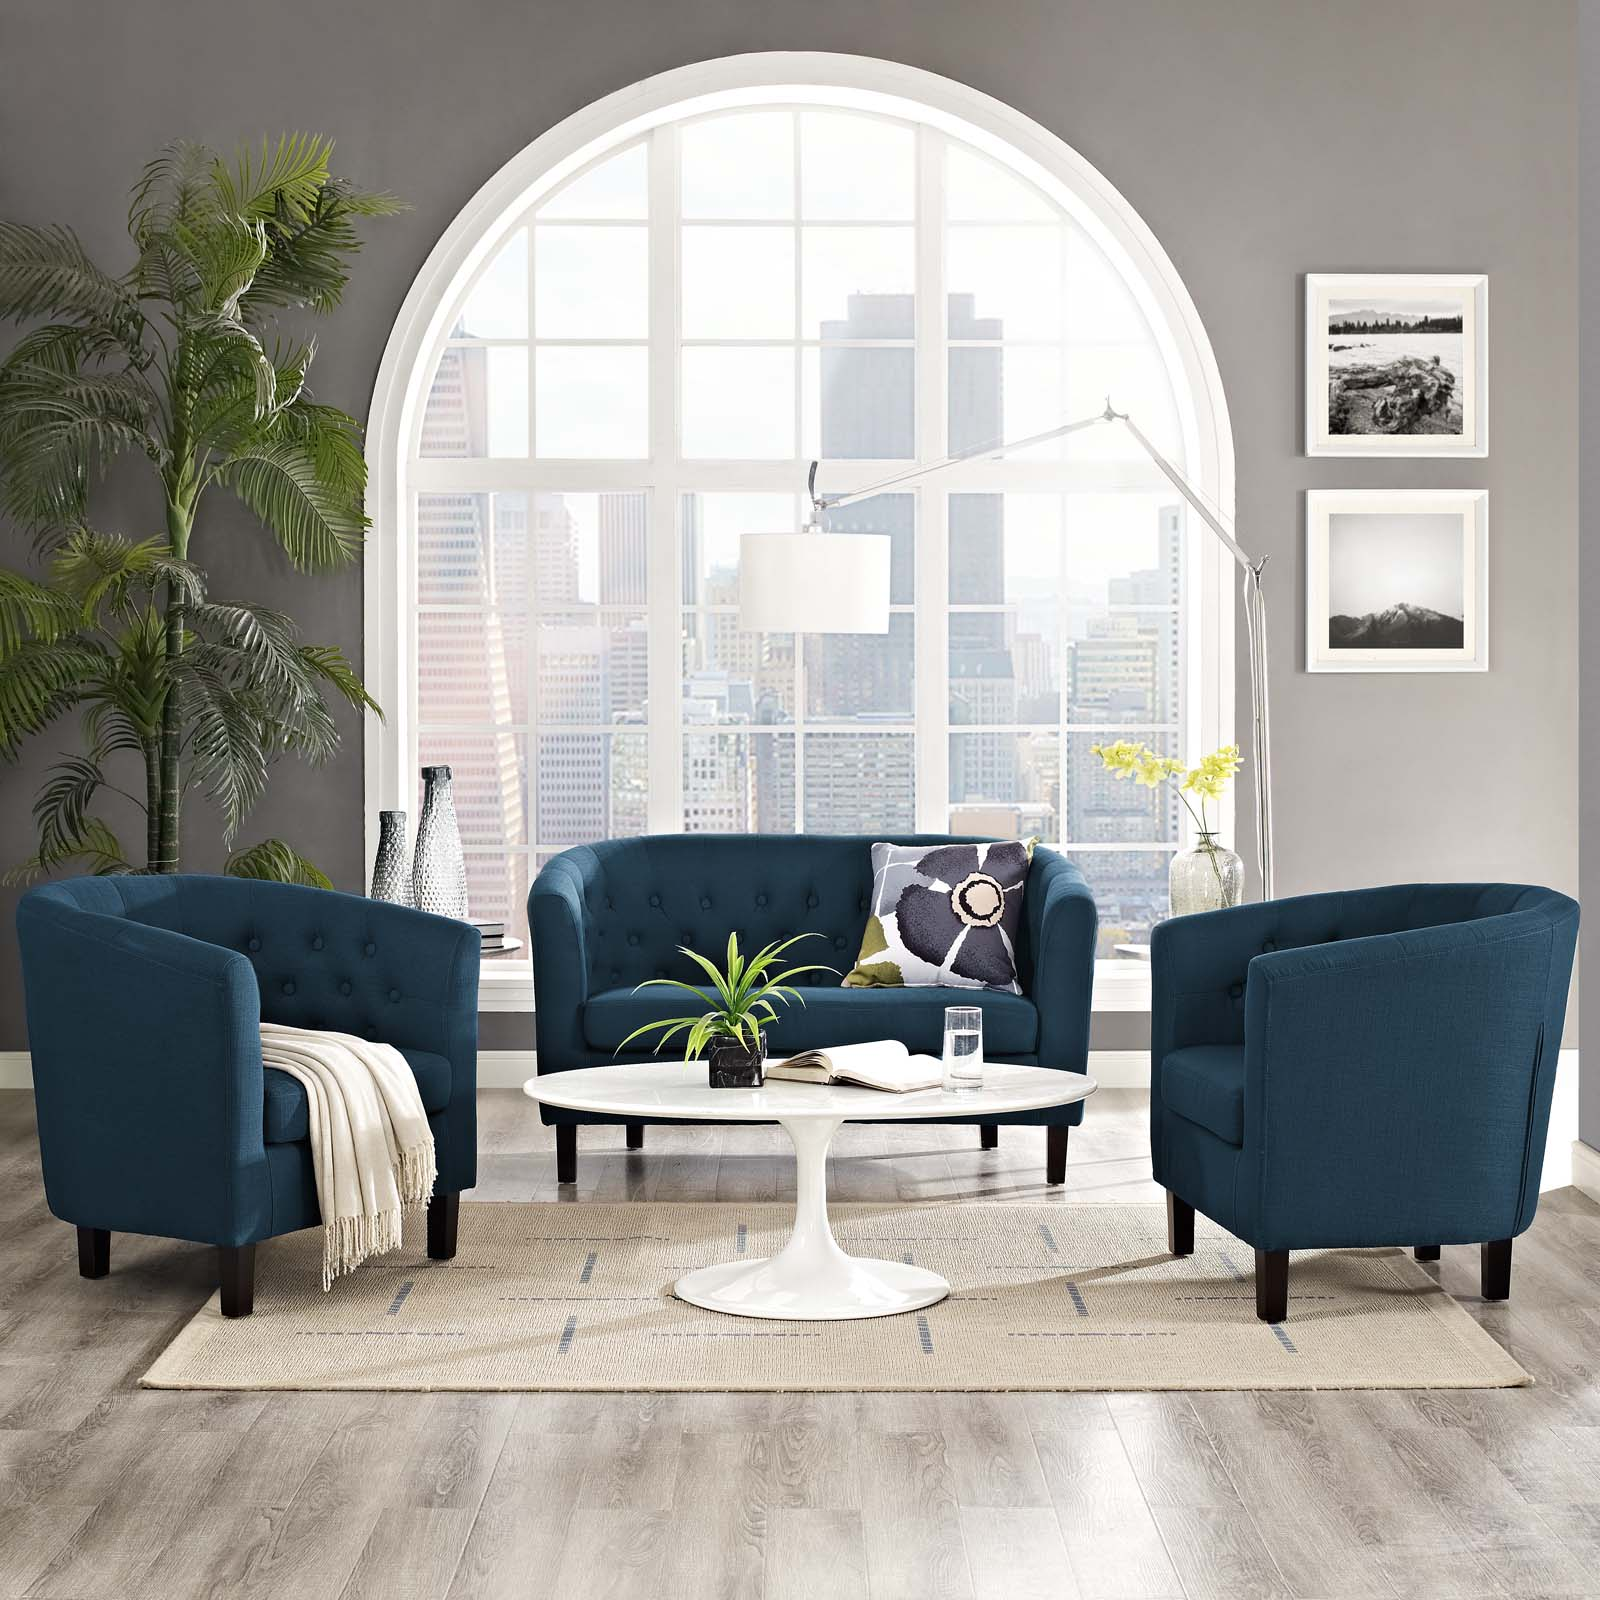 Modway Prospect 3 Piece Upholstered Fabric Loveseat and Armchair Set, Multiple Colors